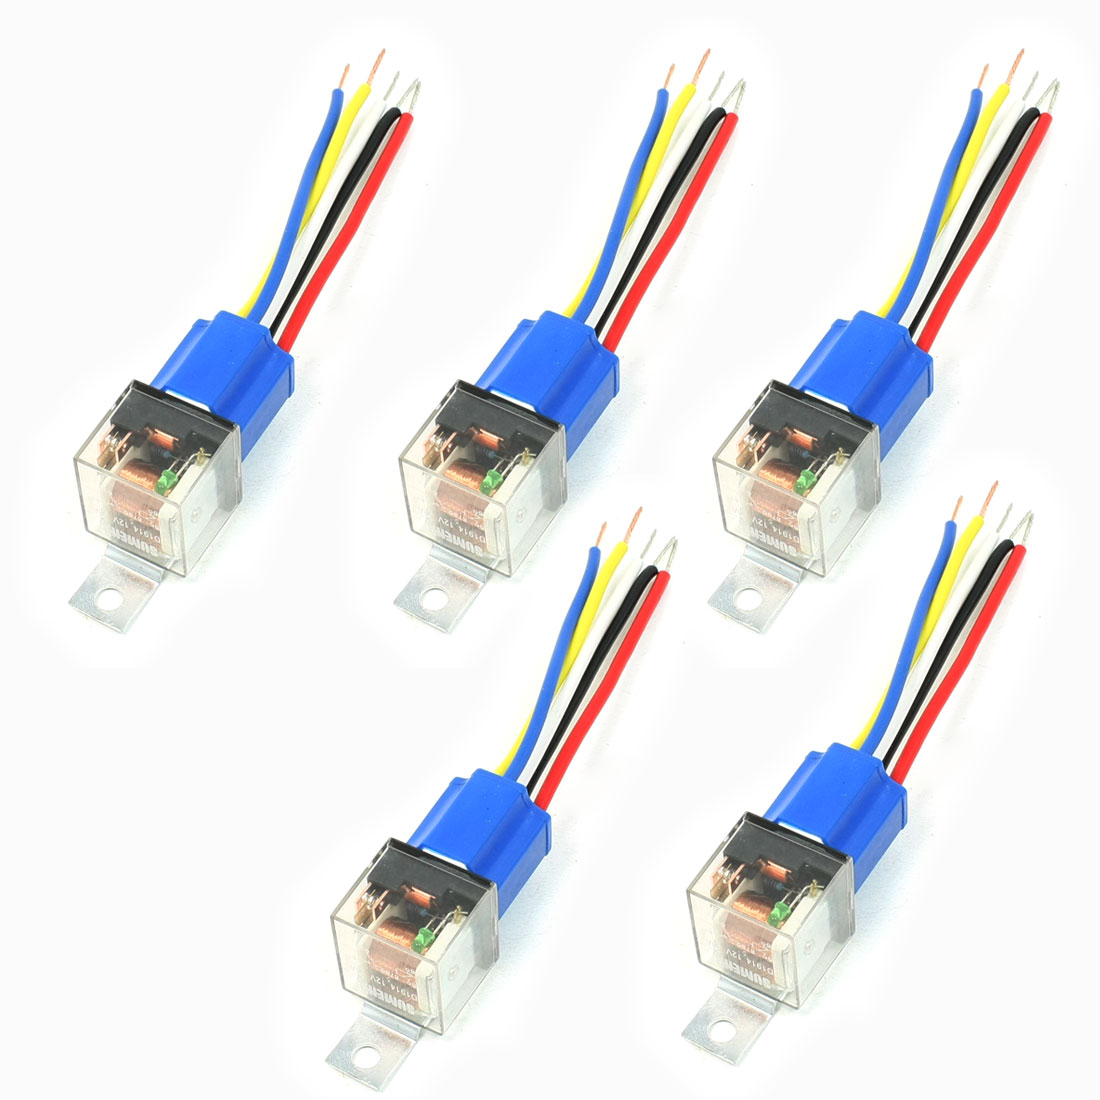 5 Pcs 5-Wires Ceramic Socket Green Pilot Lamp NO+NC SPDT Car Relay DC12V 40A